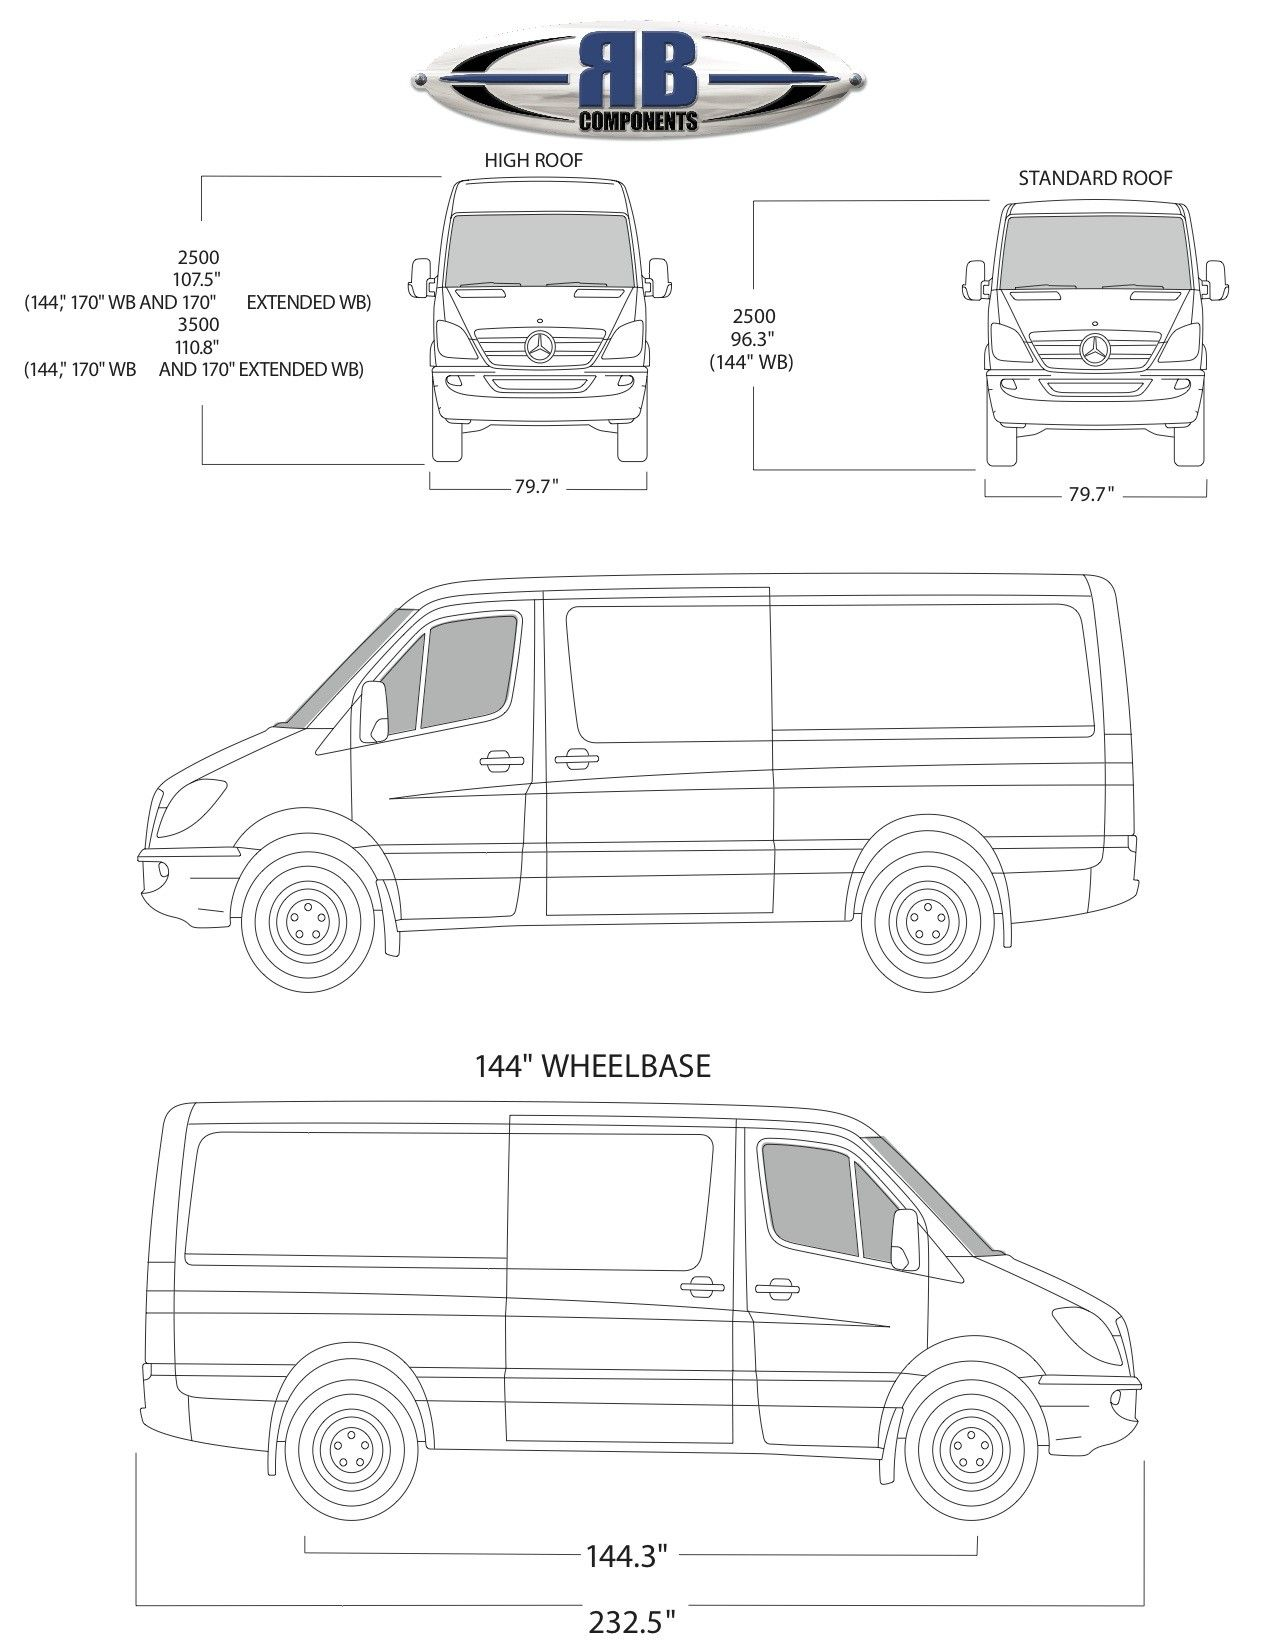 Sprinter Floorplan Templates 144 170 170 Ext Sprinter Van